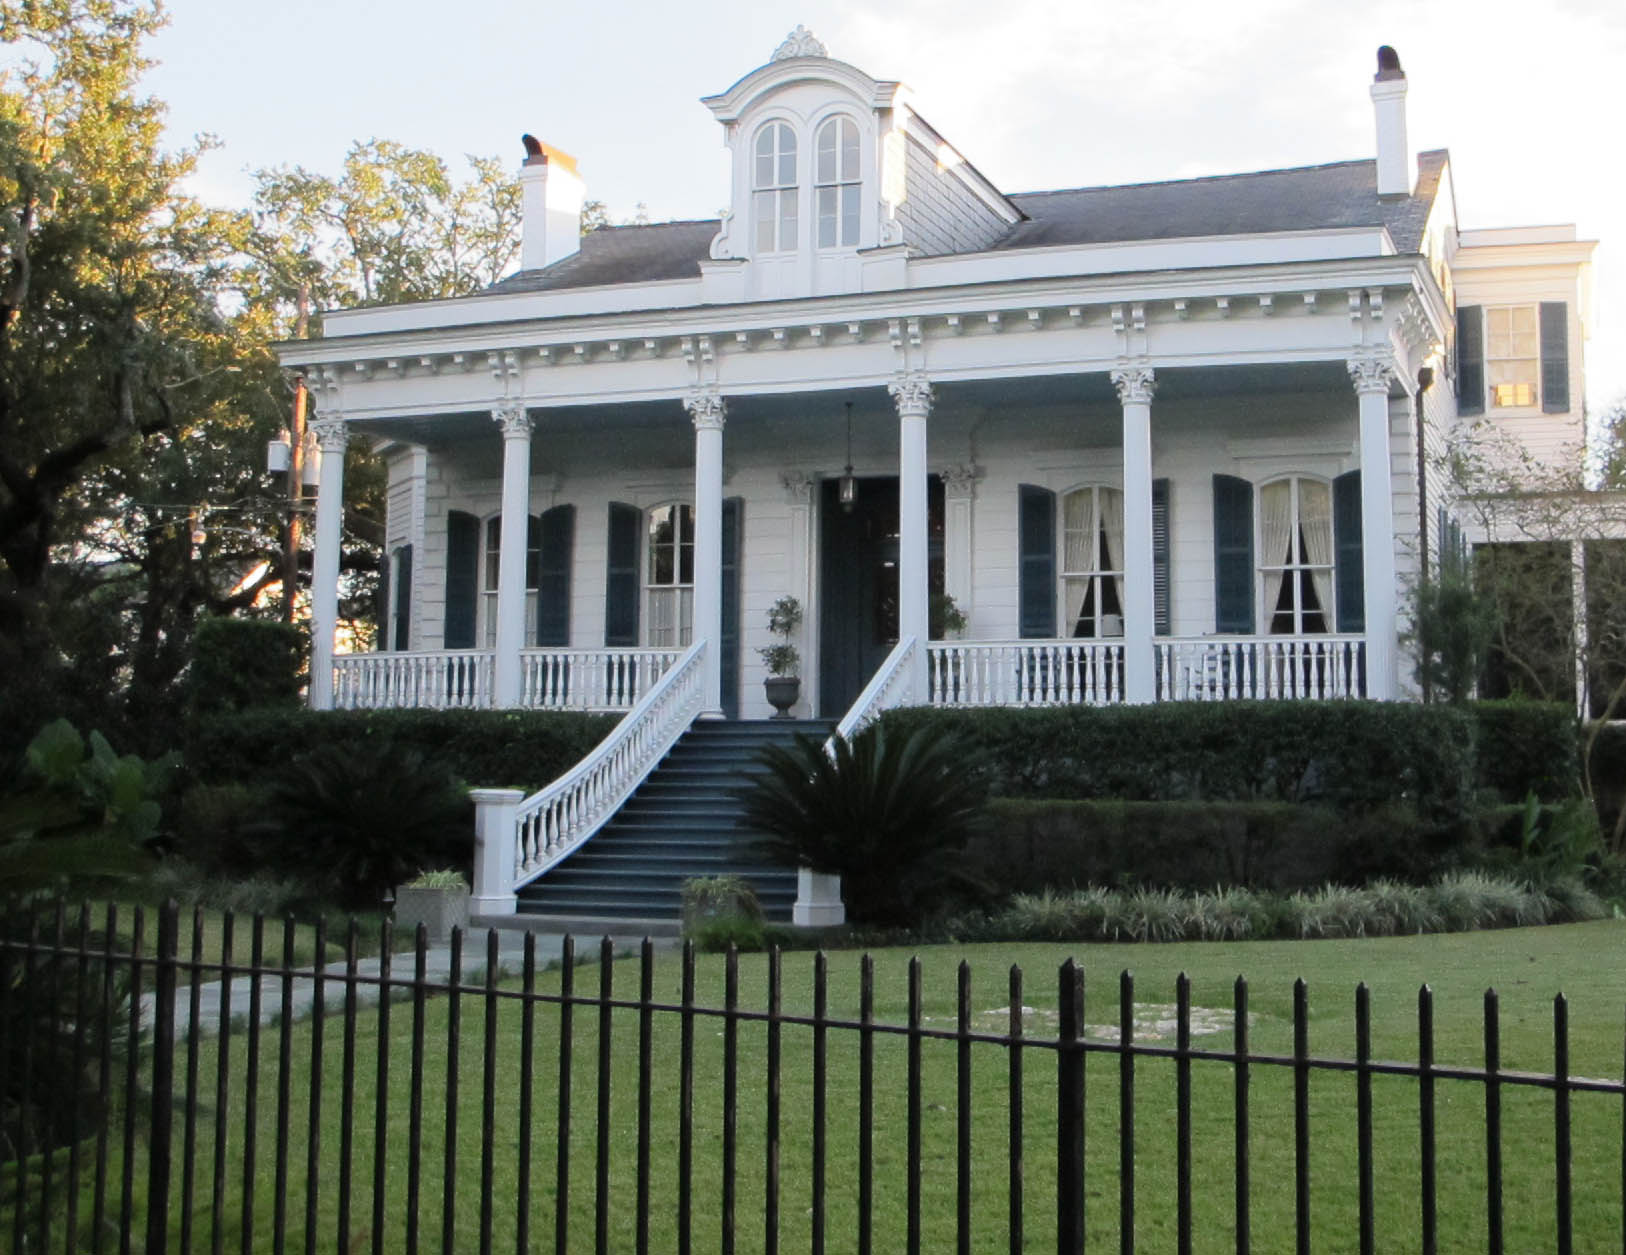 See the beautiful homes of the Garden District